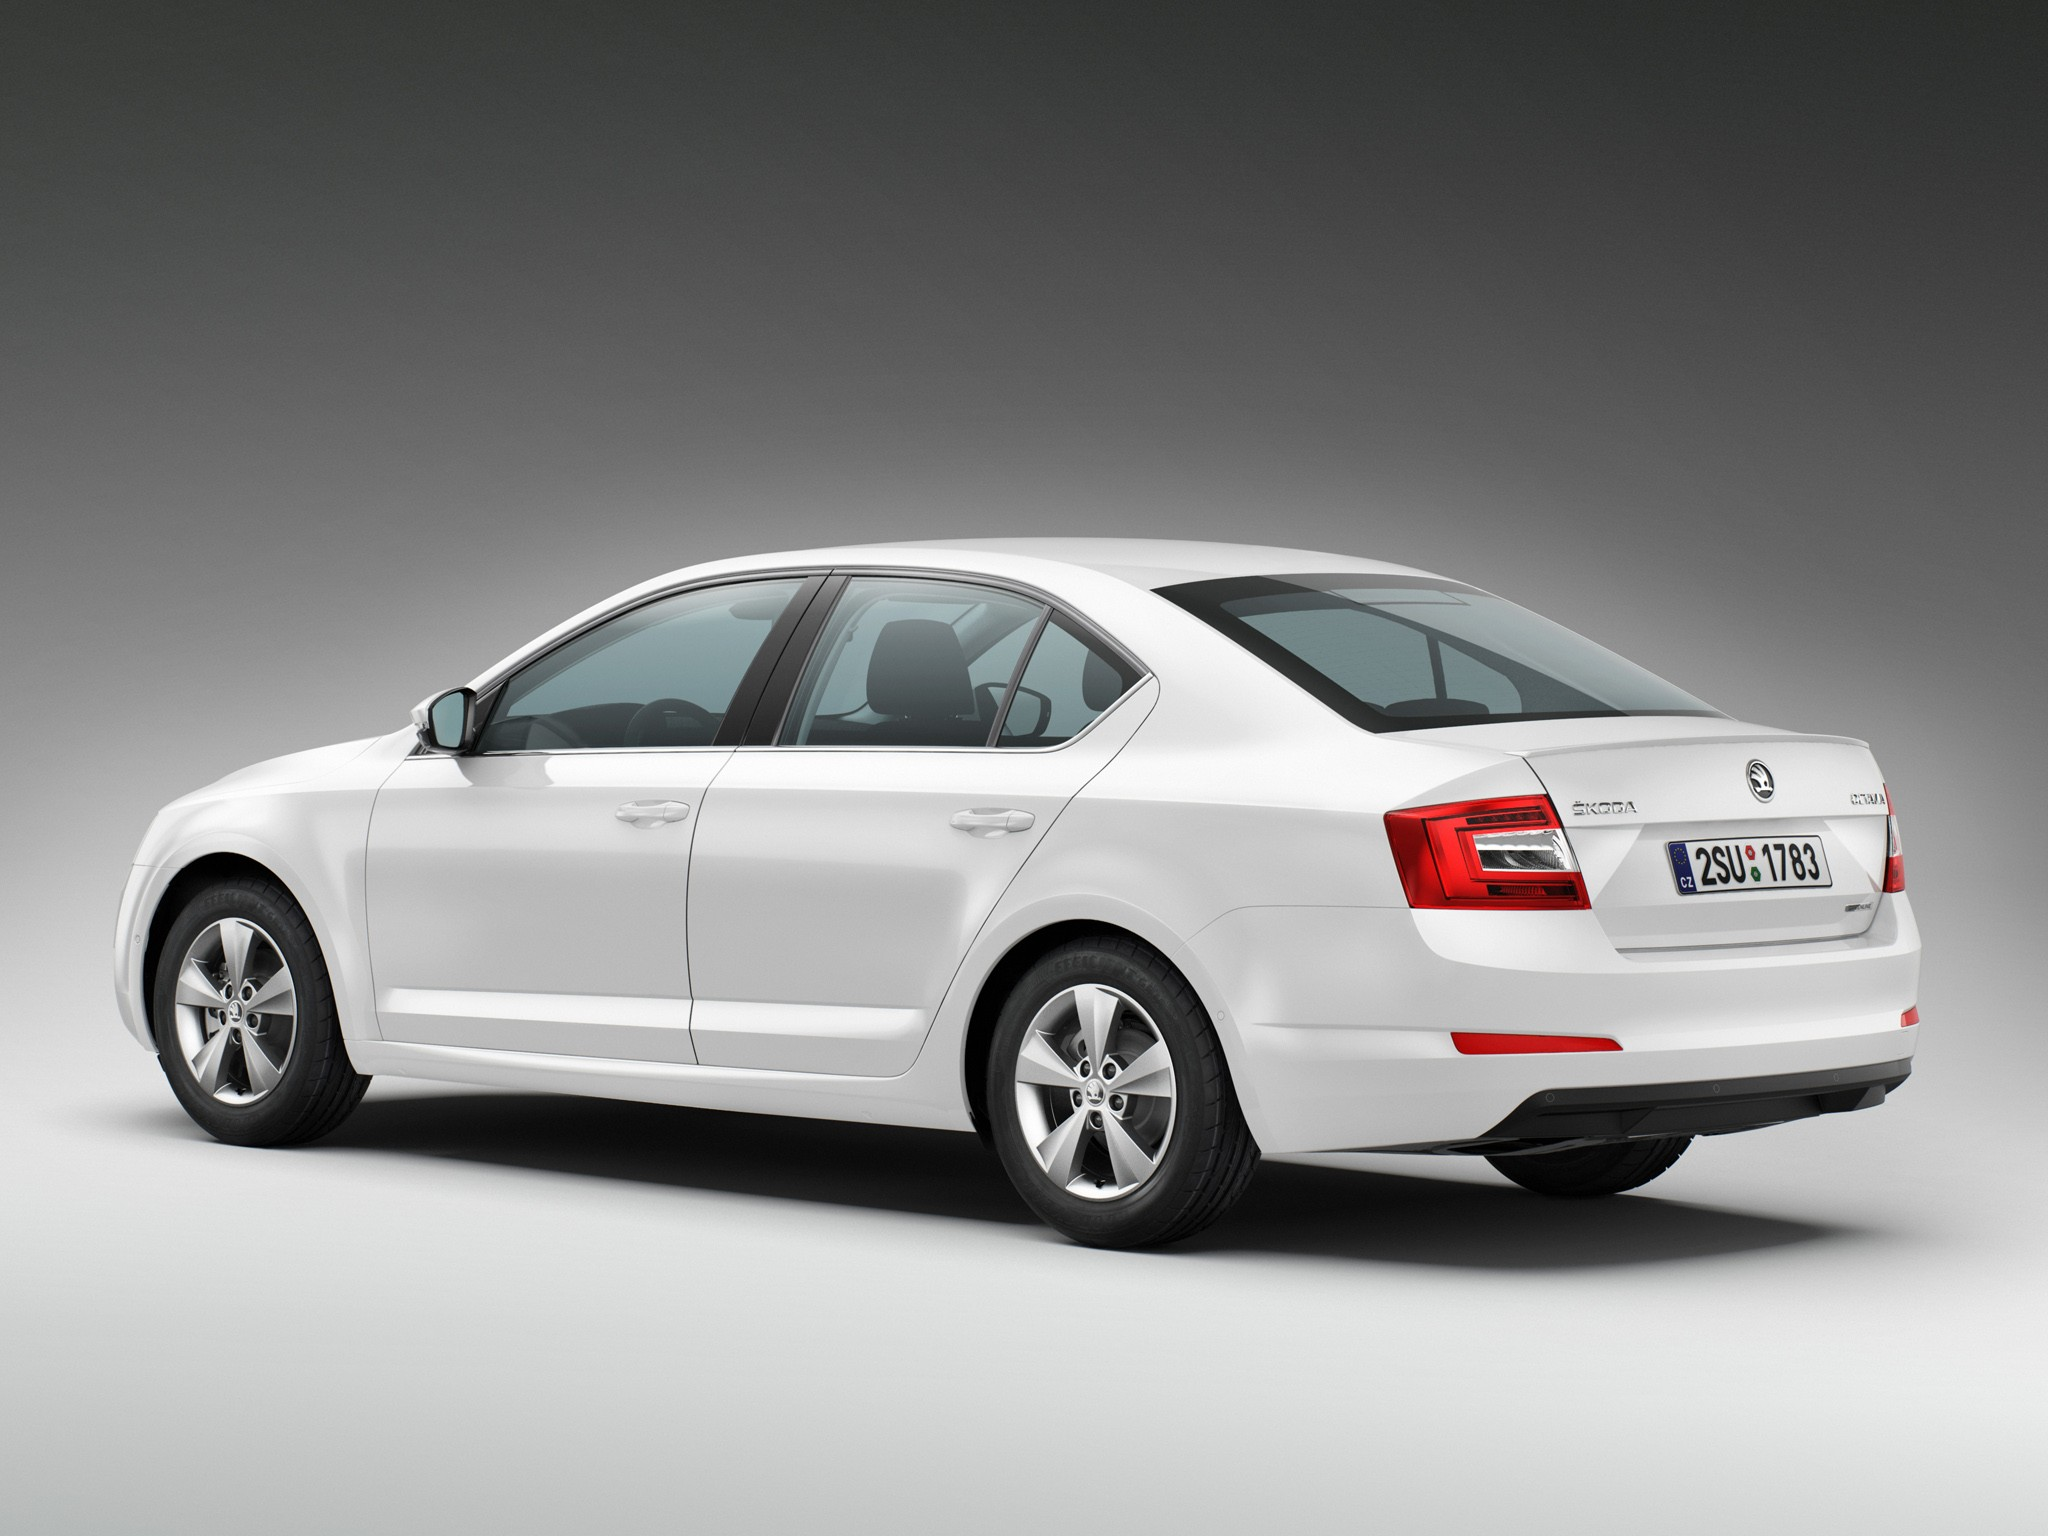 skoda octavia specs 2013 2014 2015 2016 2017. Black Bedroom Furniture Sets. Home Design Ideas